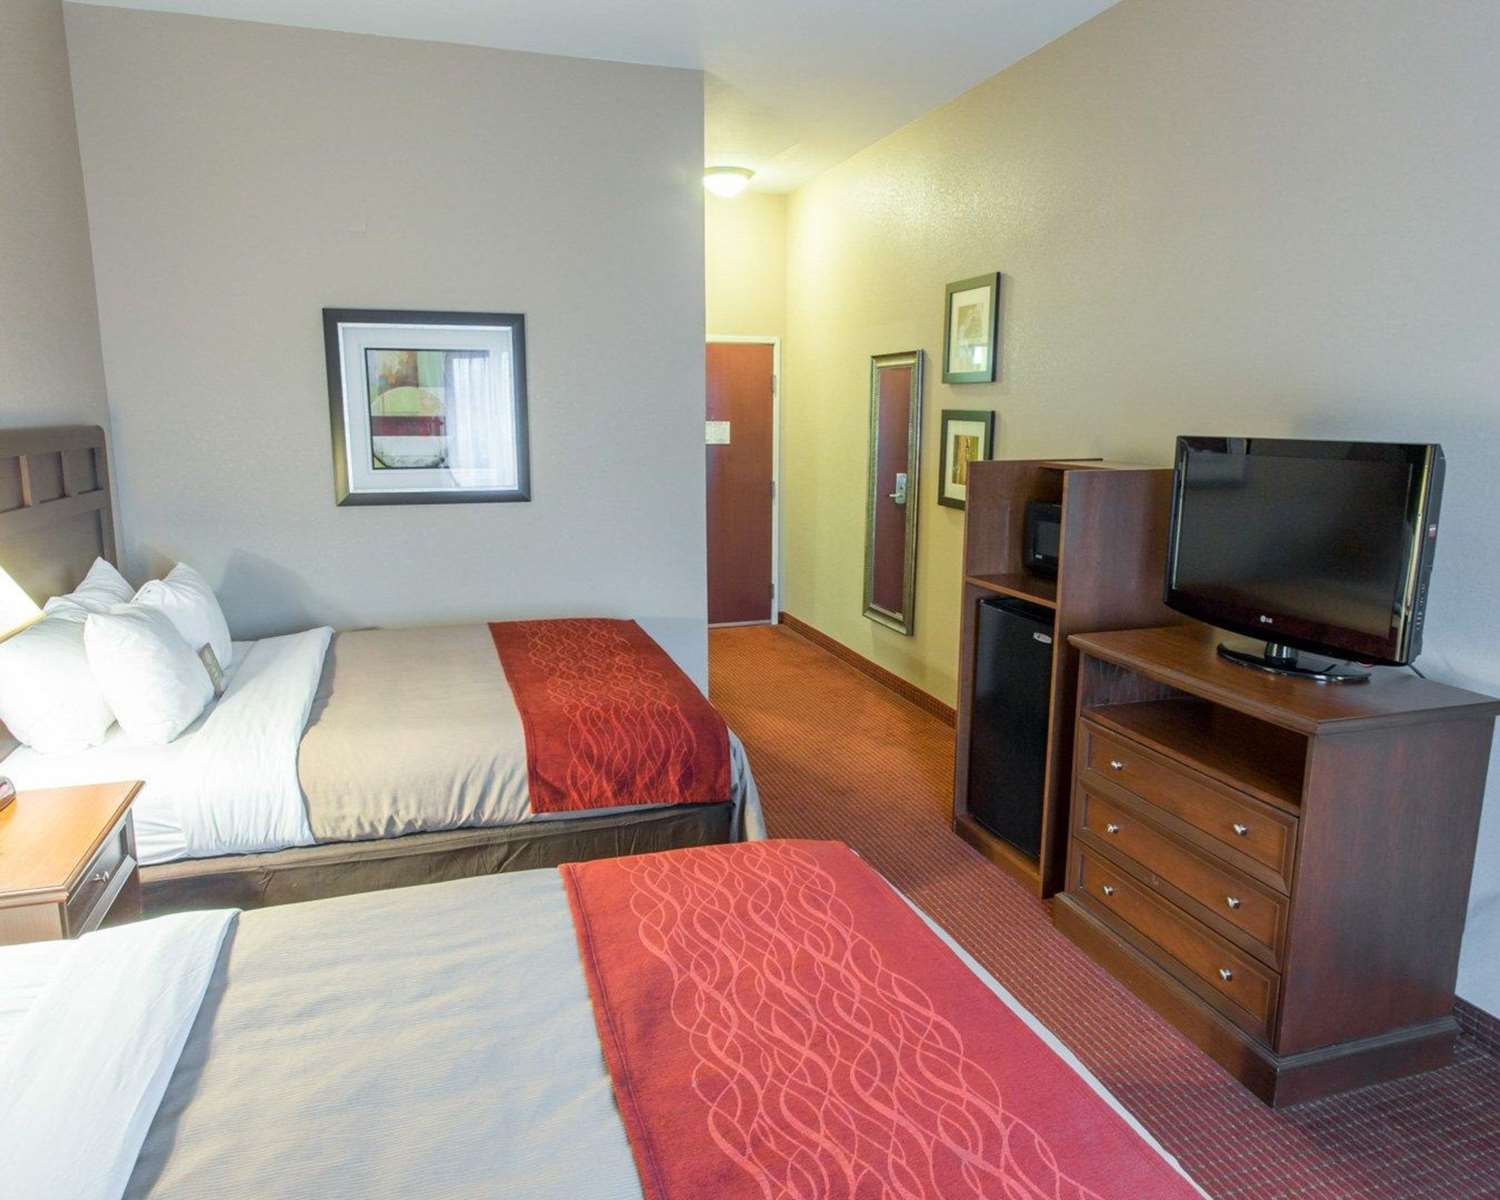 Comfort Inn New Orleans Airport St Rose La See Discounts